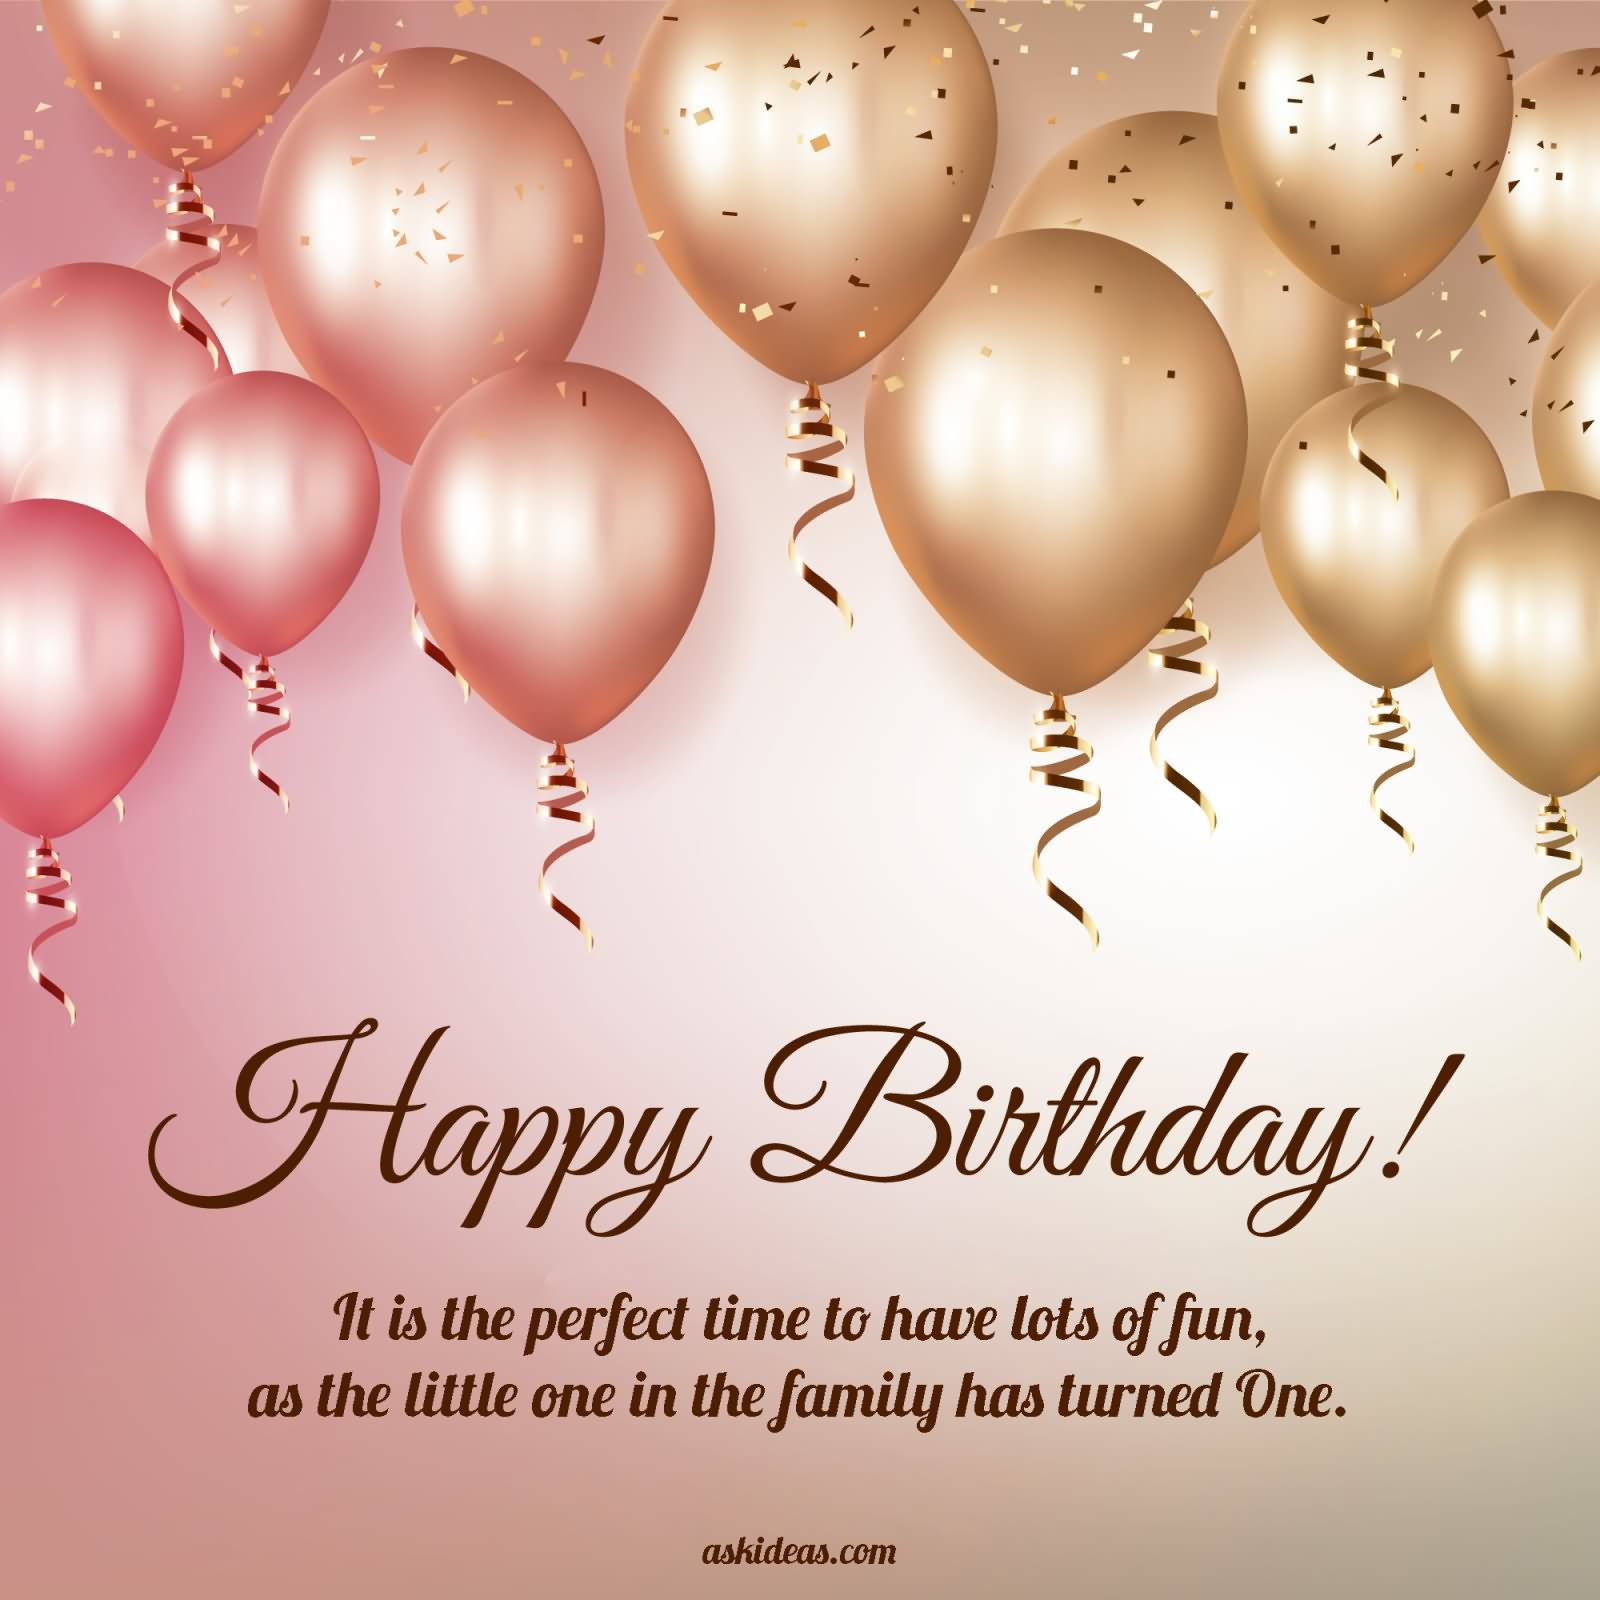 1st Birthday Wishes & Cute Baby Birthday Messages